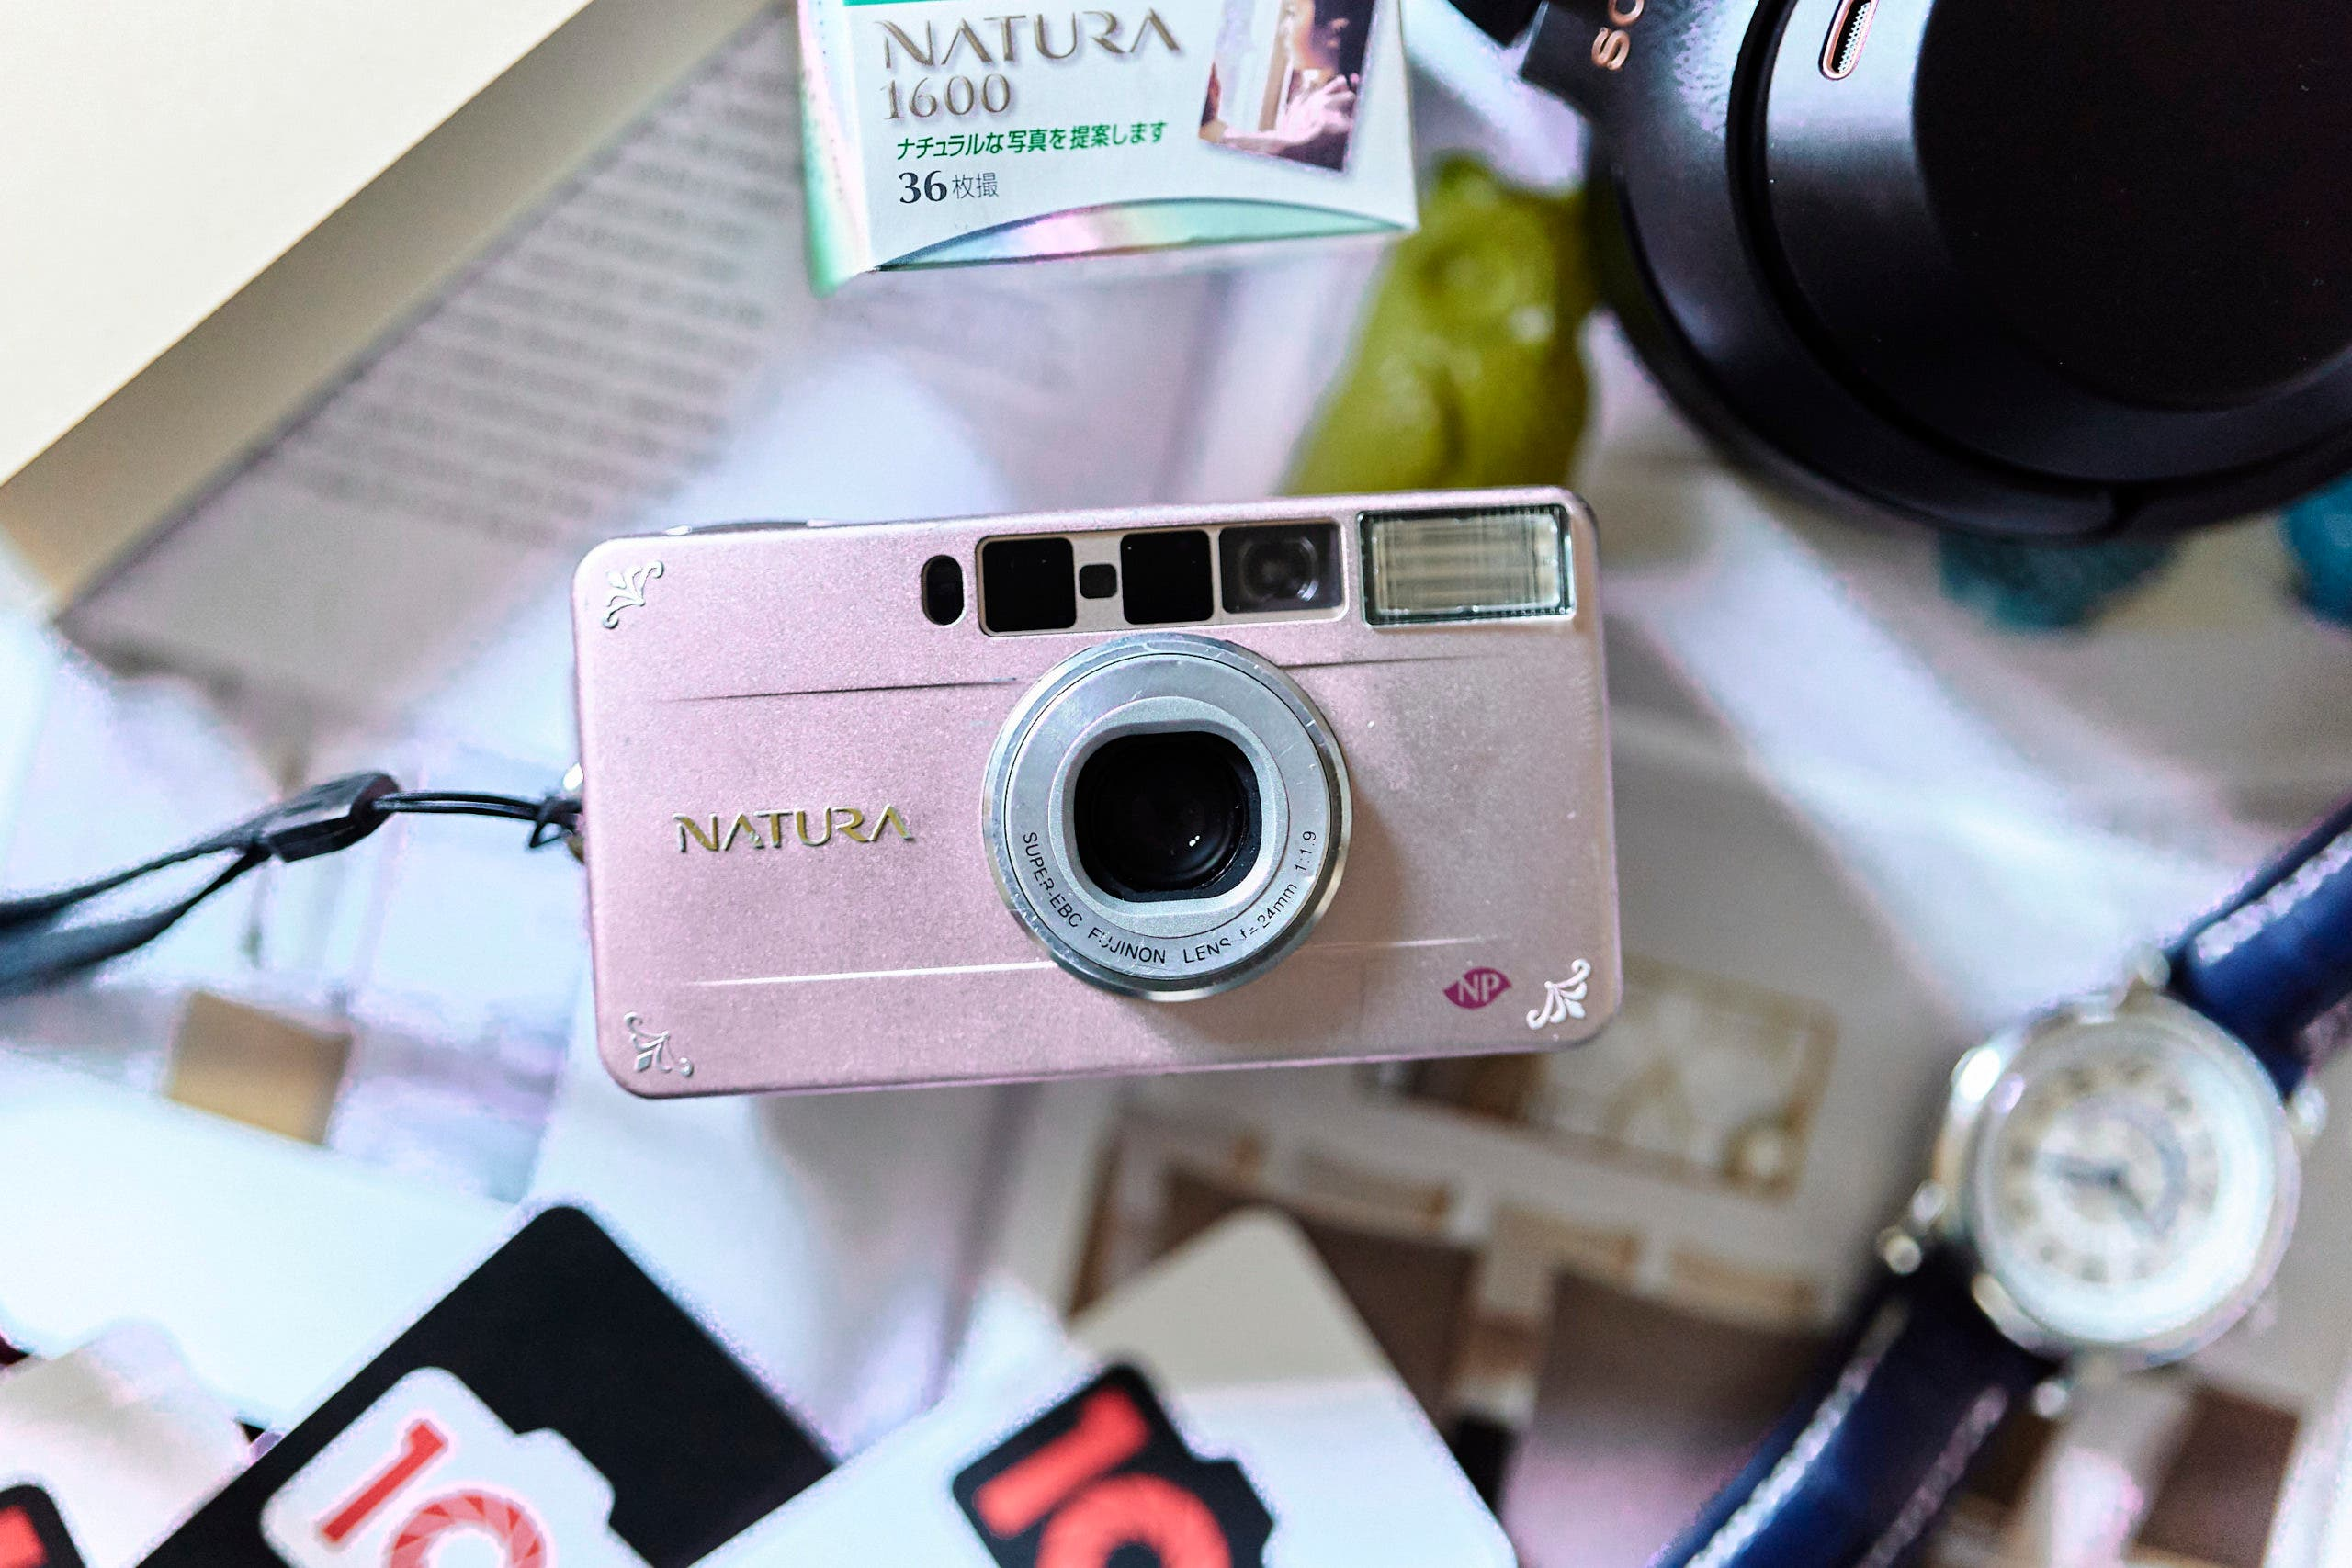 Why the Fujifilm Natura S Is the Perfect, Care-Free Camera for Parties